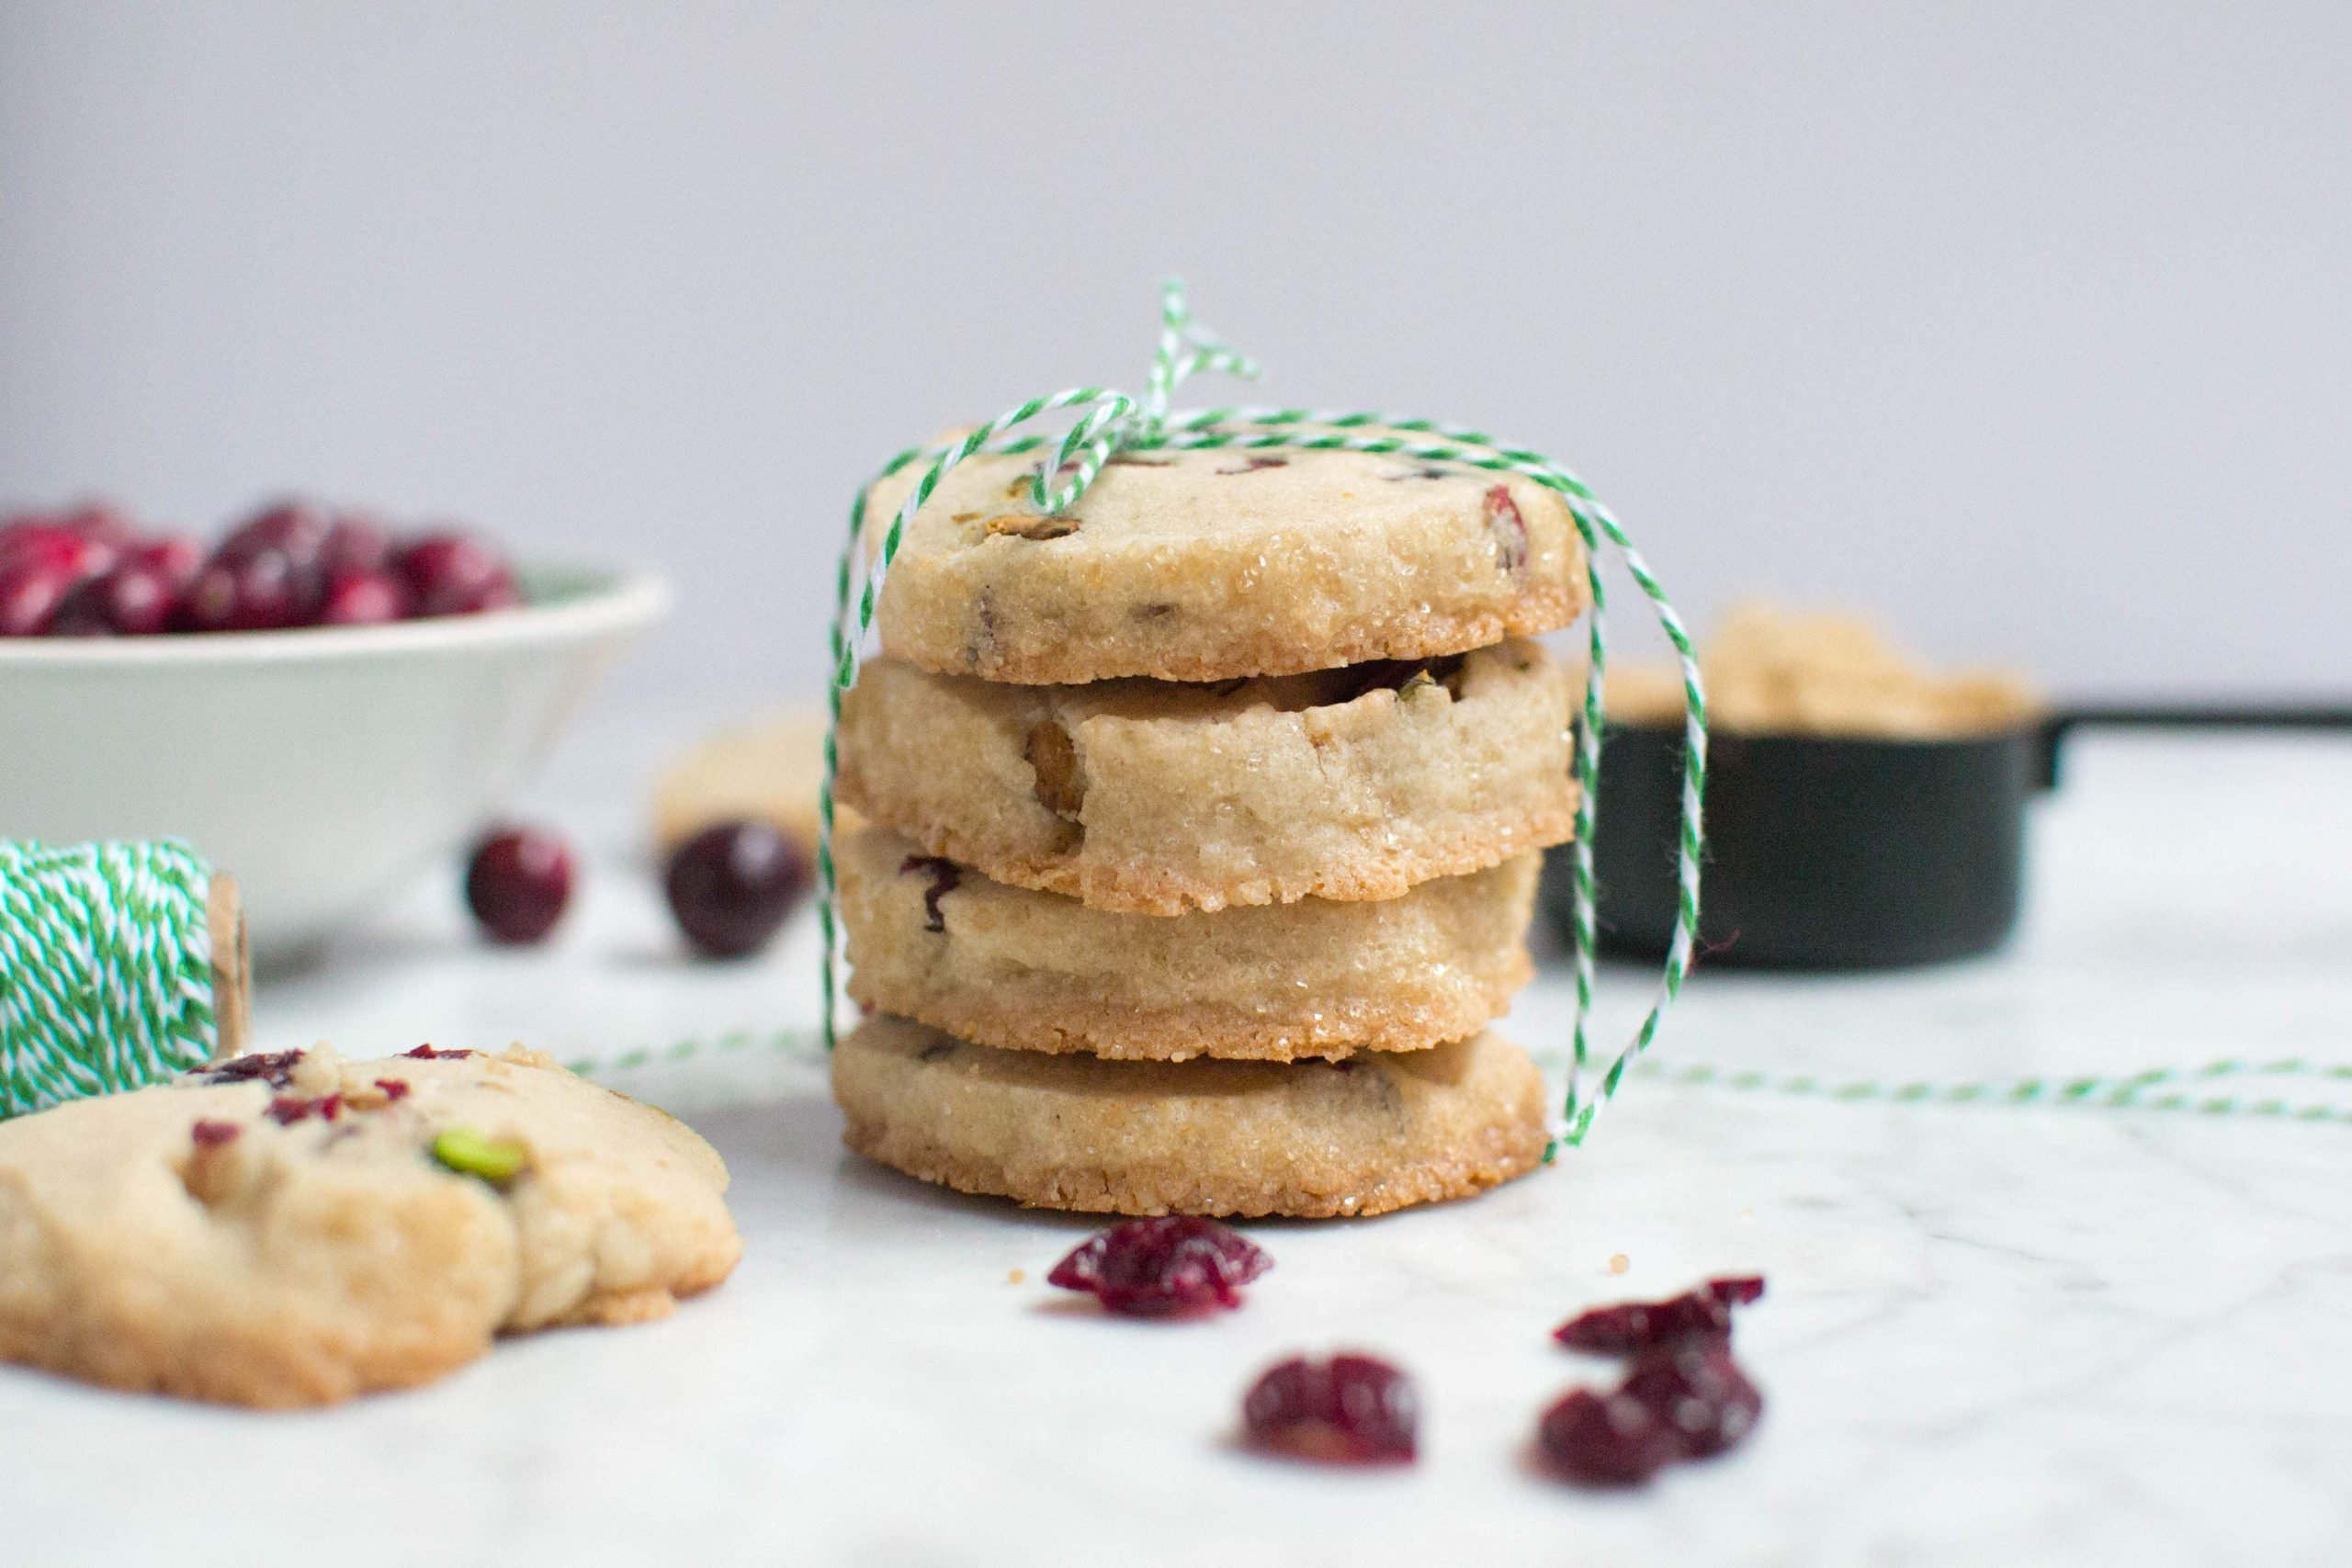 Gluten-Free Cranberry Pistachio Icebox Cookies (GF, DF, V) - A Dash of Megnut